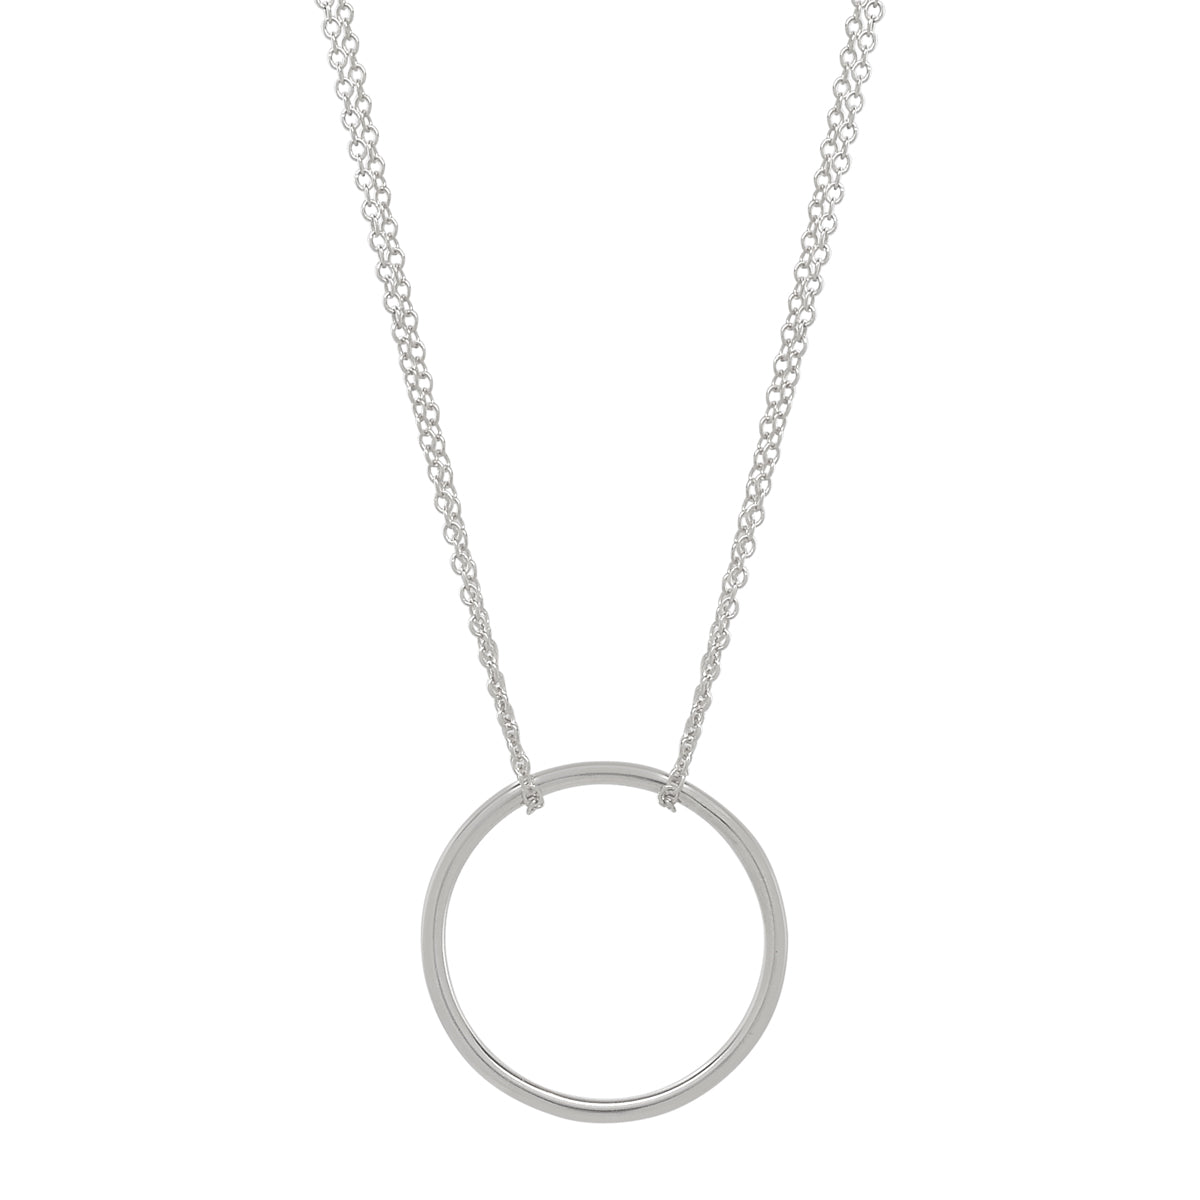 Silver Circle- Silver Chain Necklace